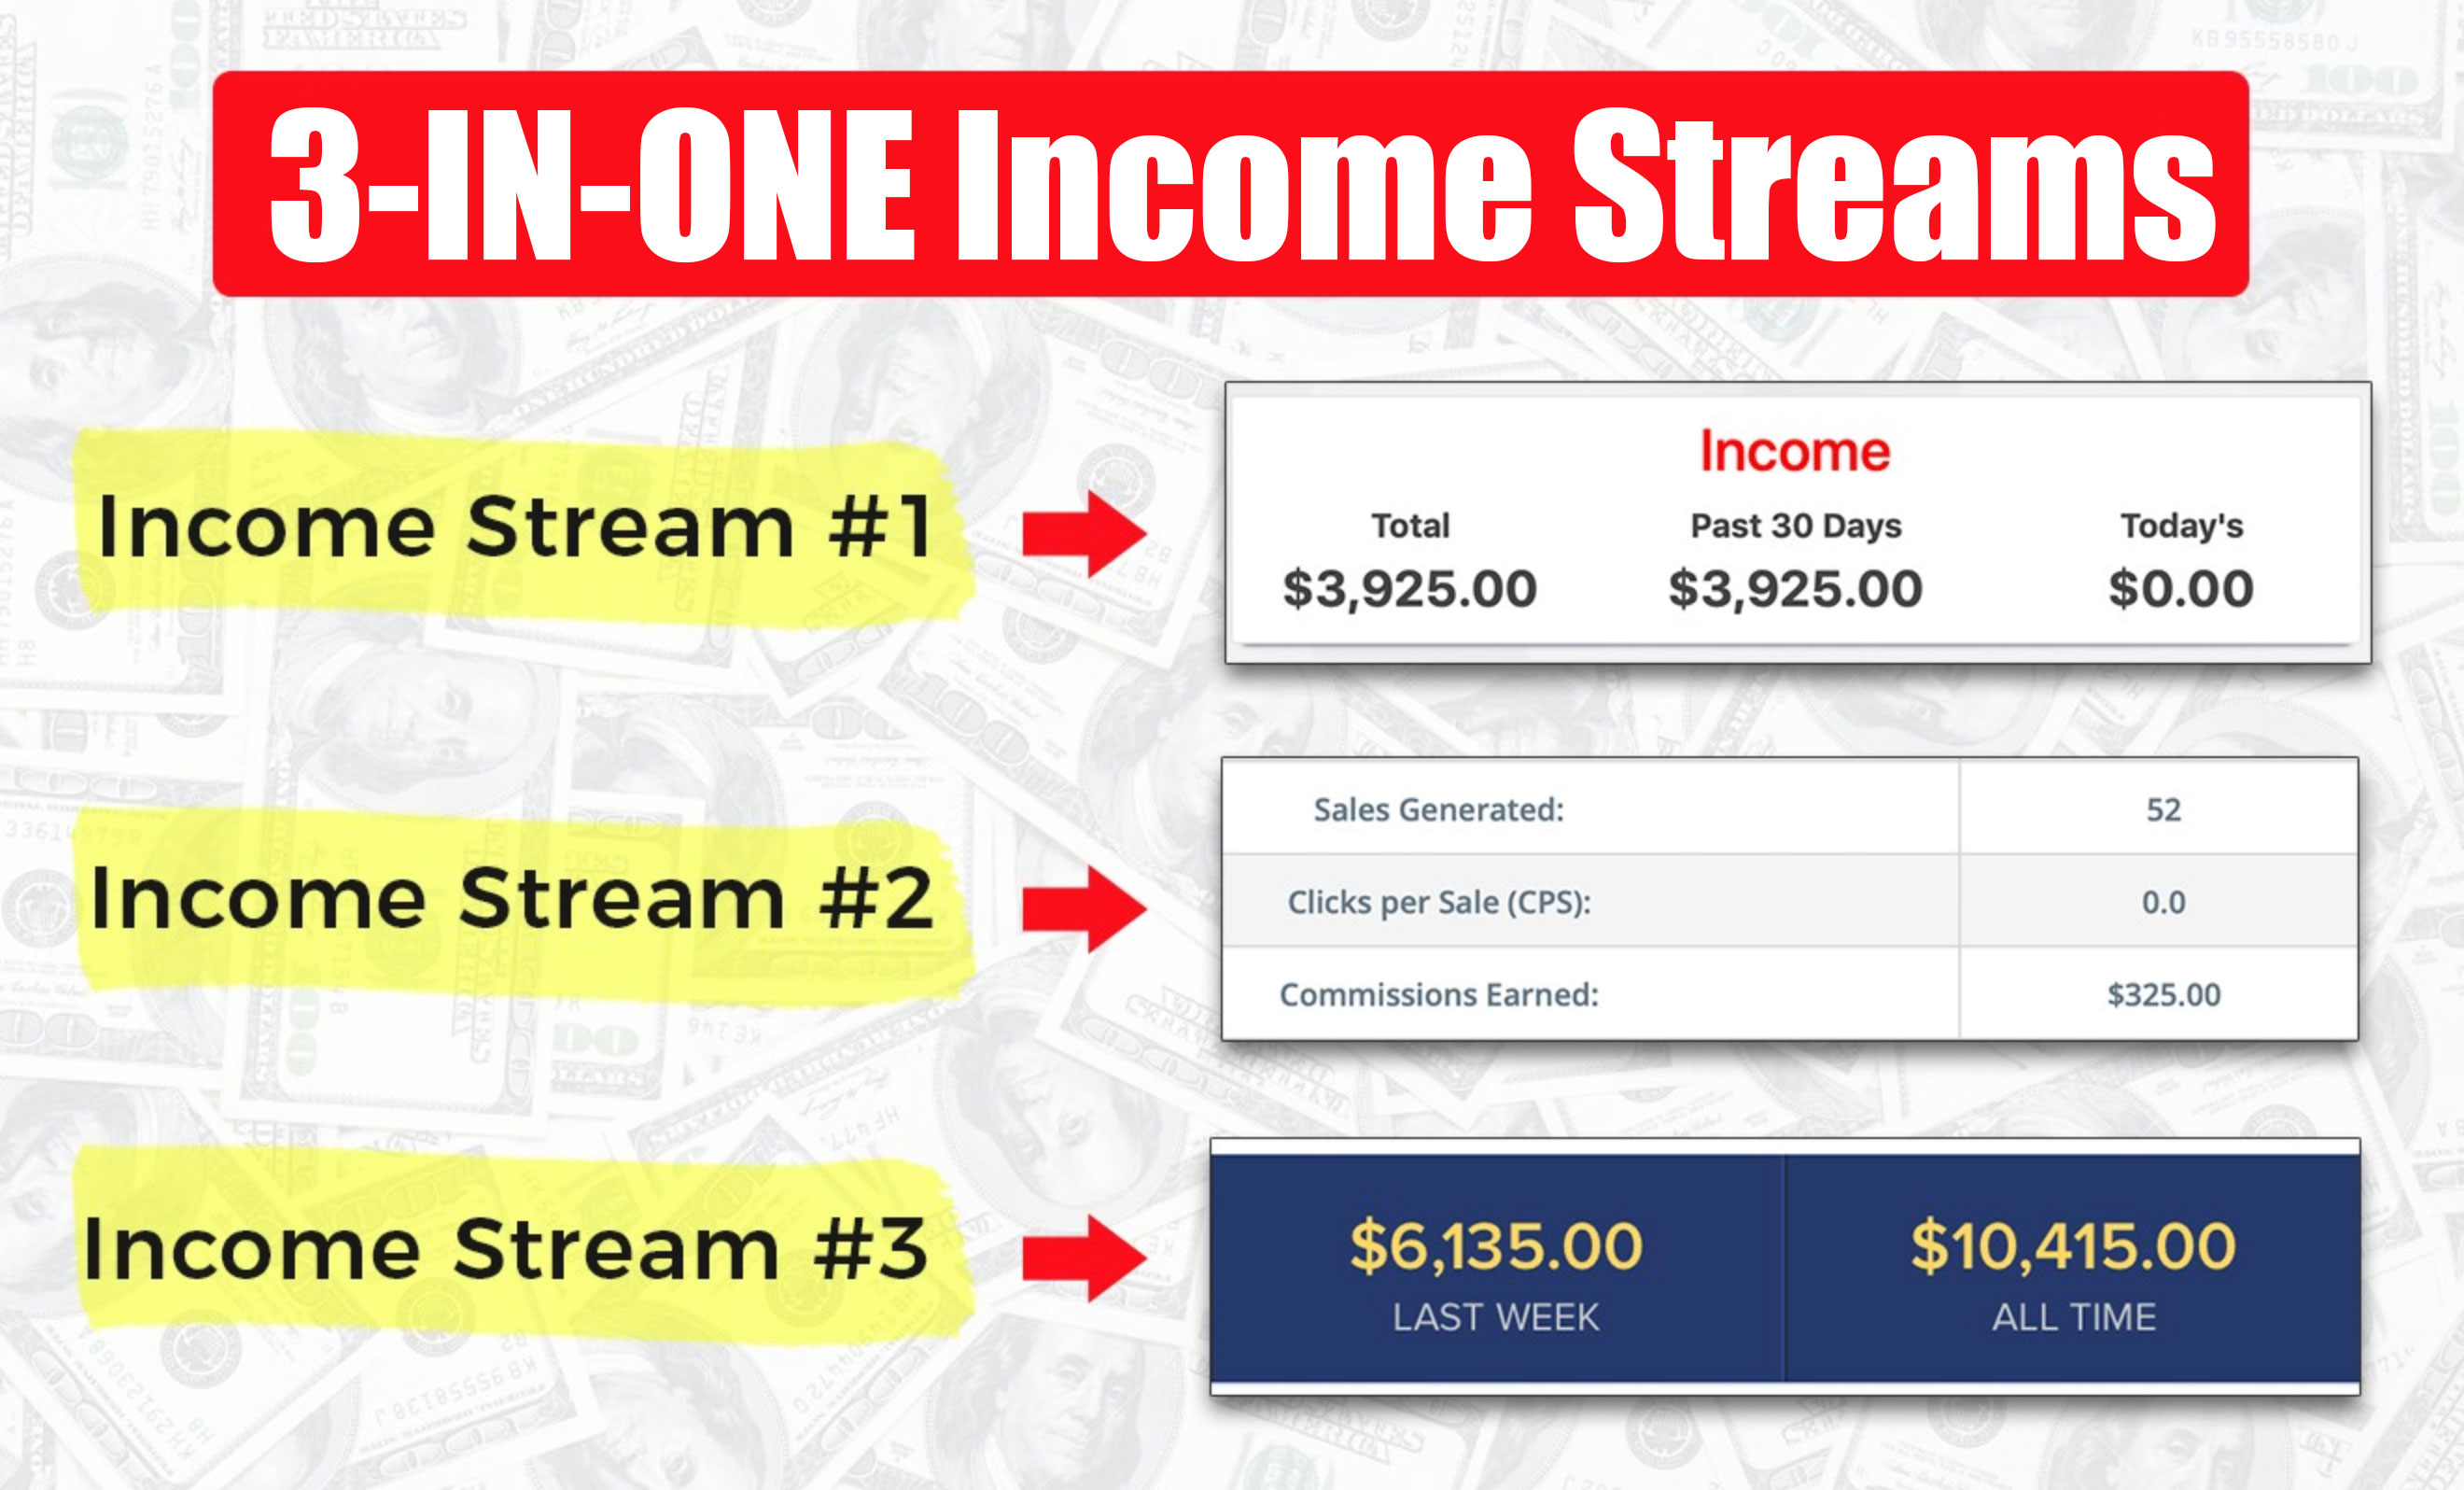 3-IN-1 Income Streams